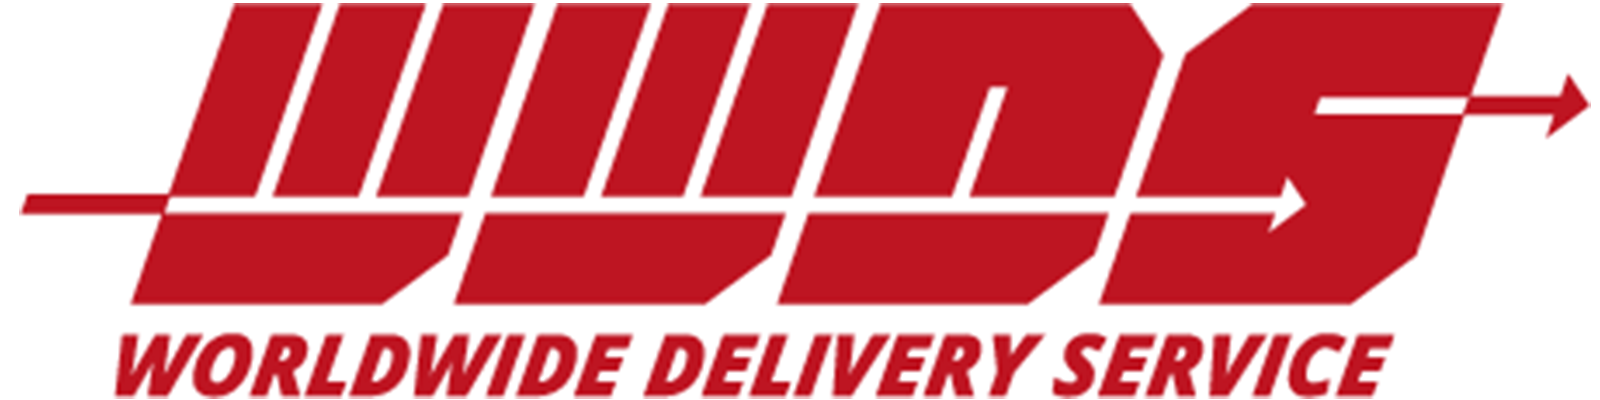 WWDS | Worldwide delivery service